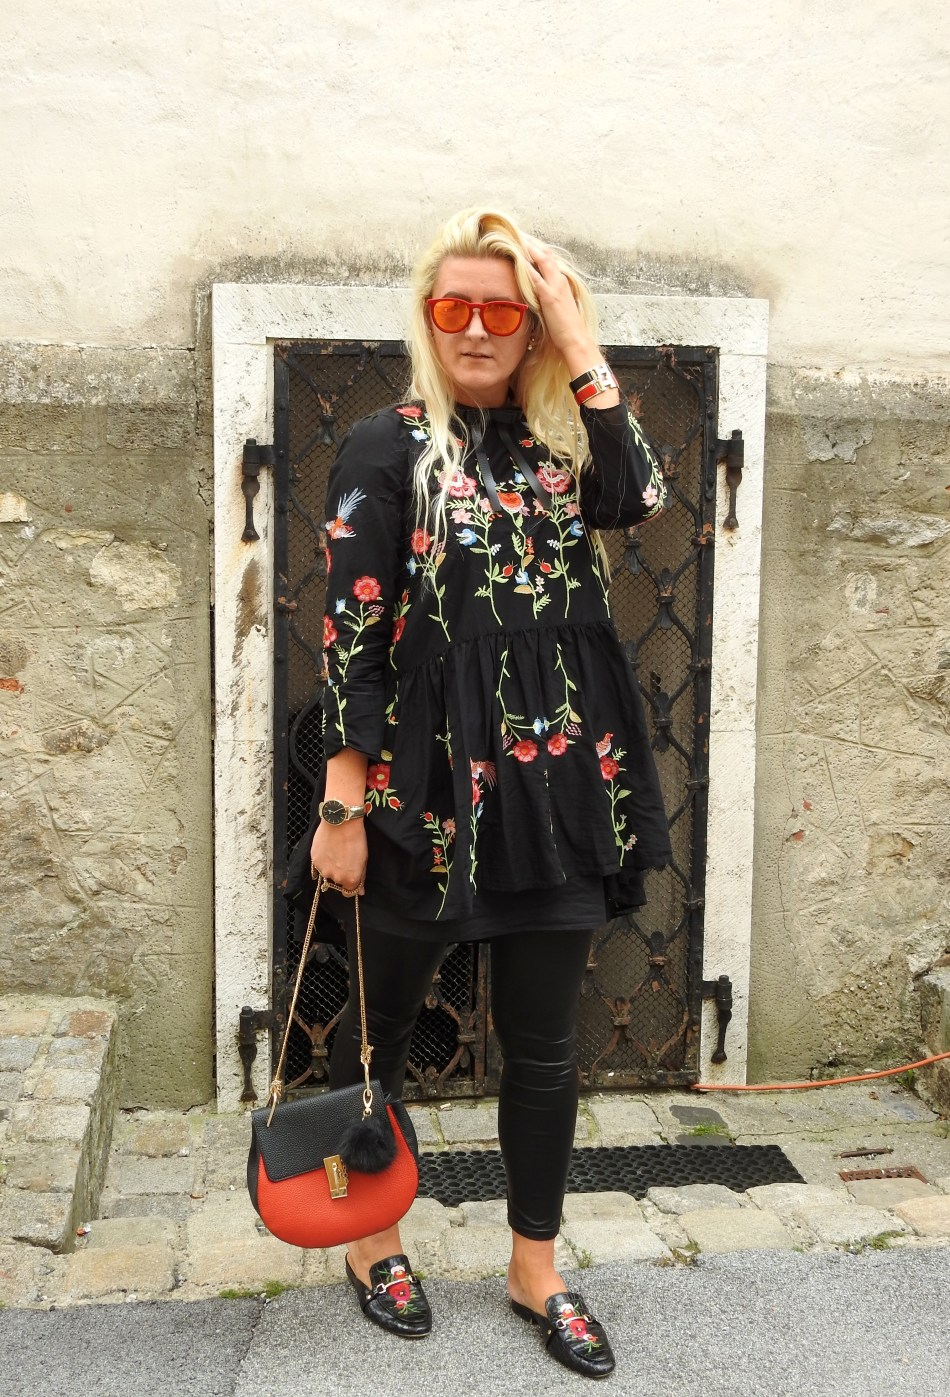 Allinblack-carrieslifestyle-Mules-Gucci-Leatherpants-Dress-Chloe-Drew-Bag-Embroidered-Tamara-Prutsch